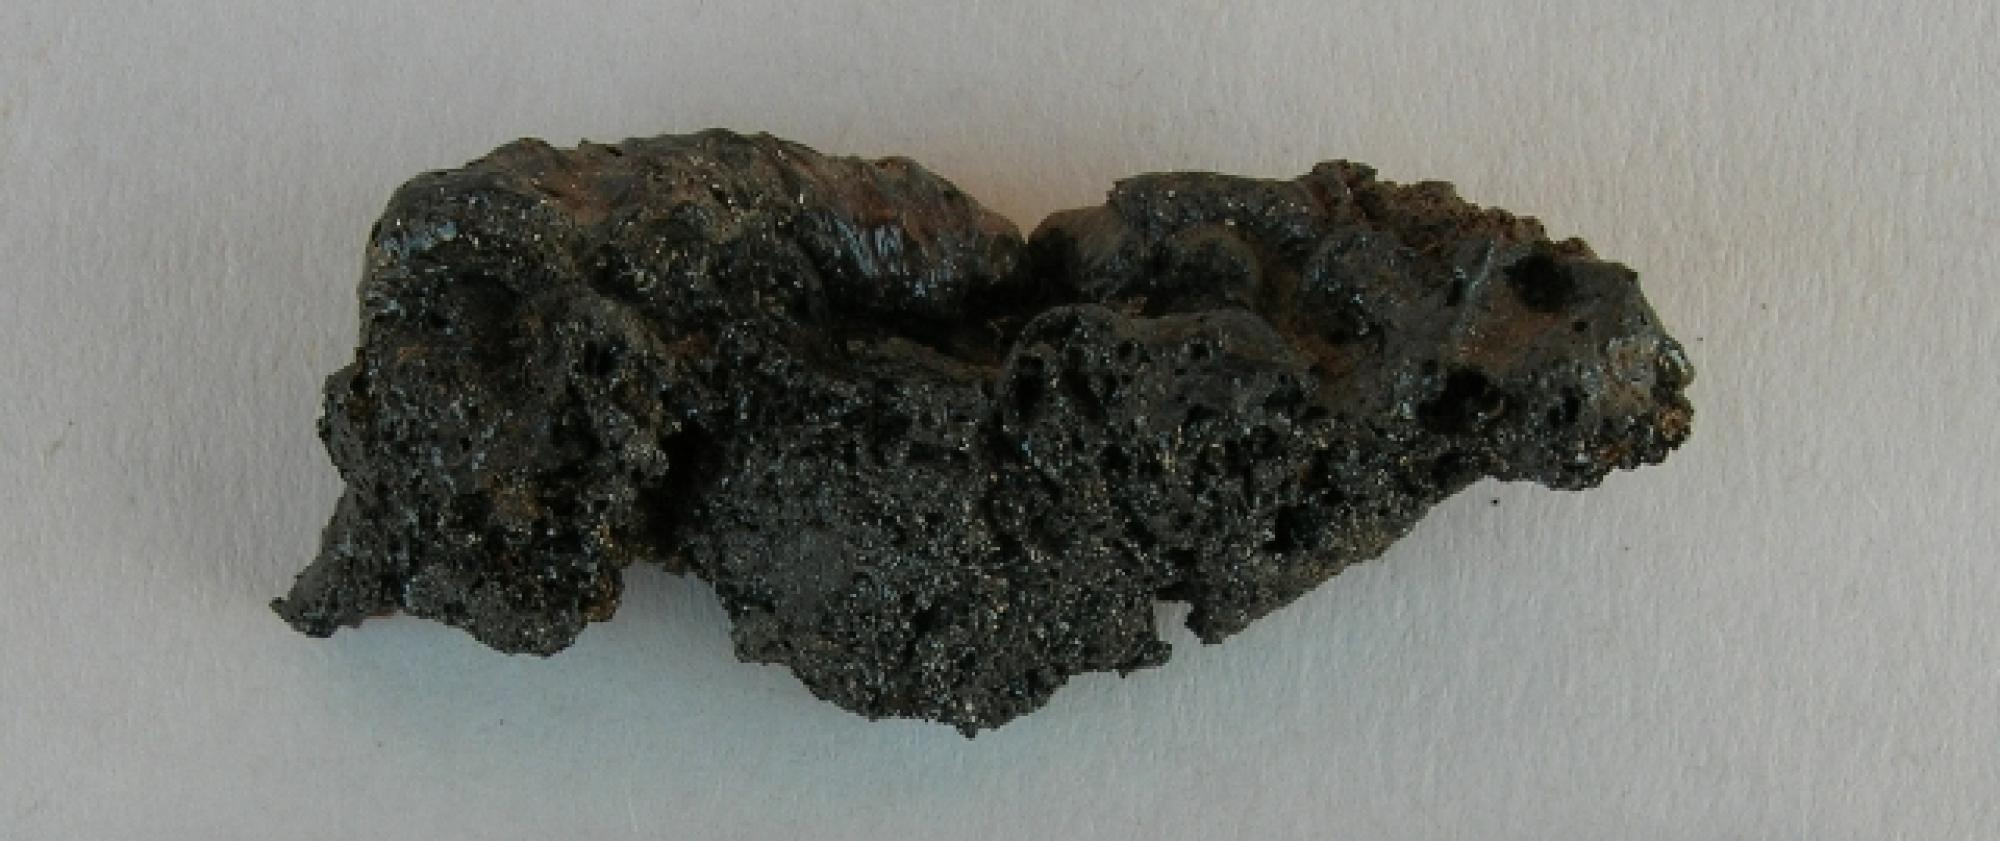 """The research team, which includes UA faculty and students, are fascinated with the recent discovery of fulgurite, or """"petrified lightning,"""" at Mt. Lykaion."""